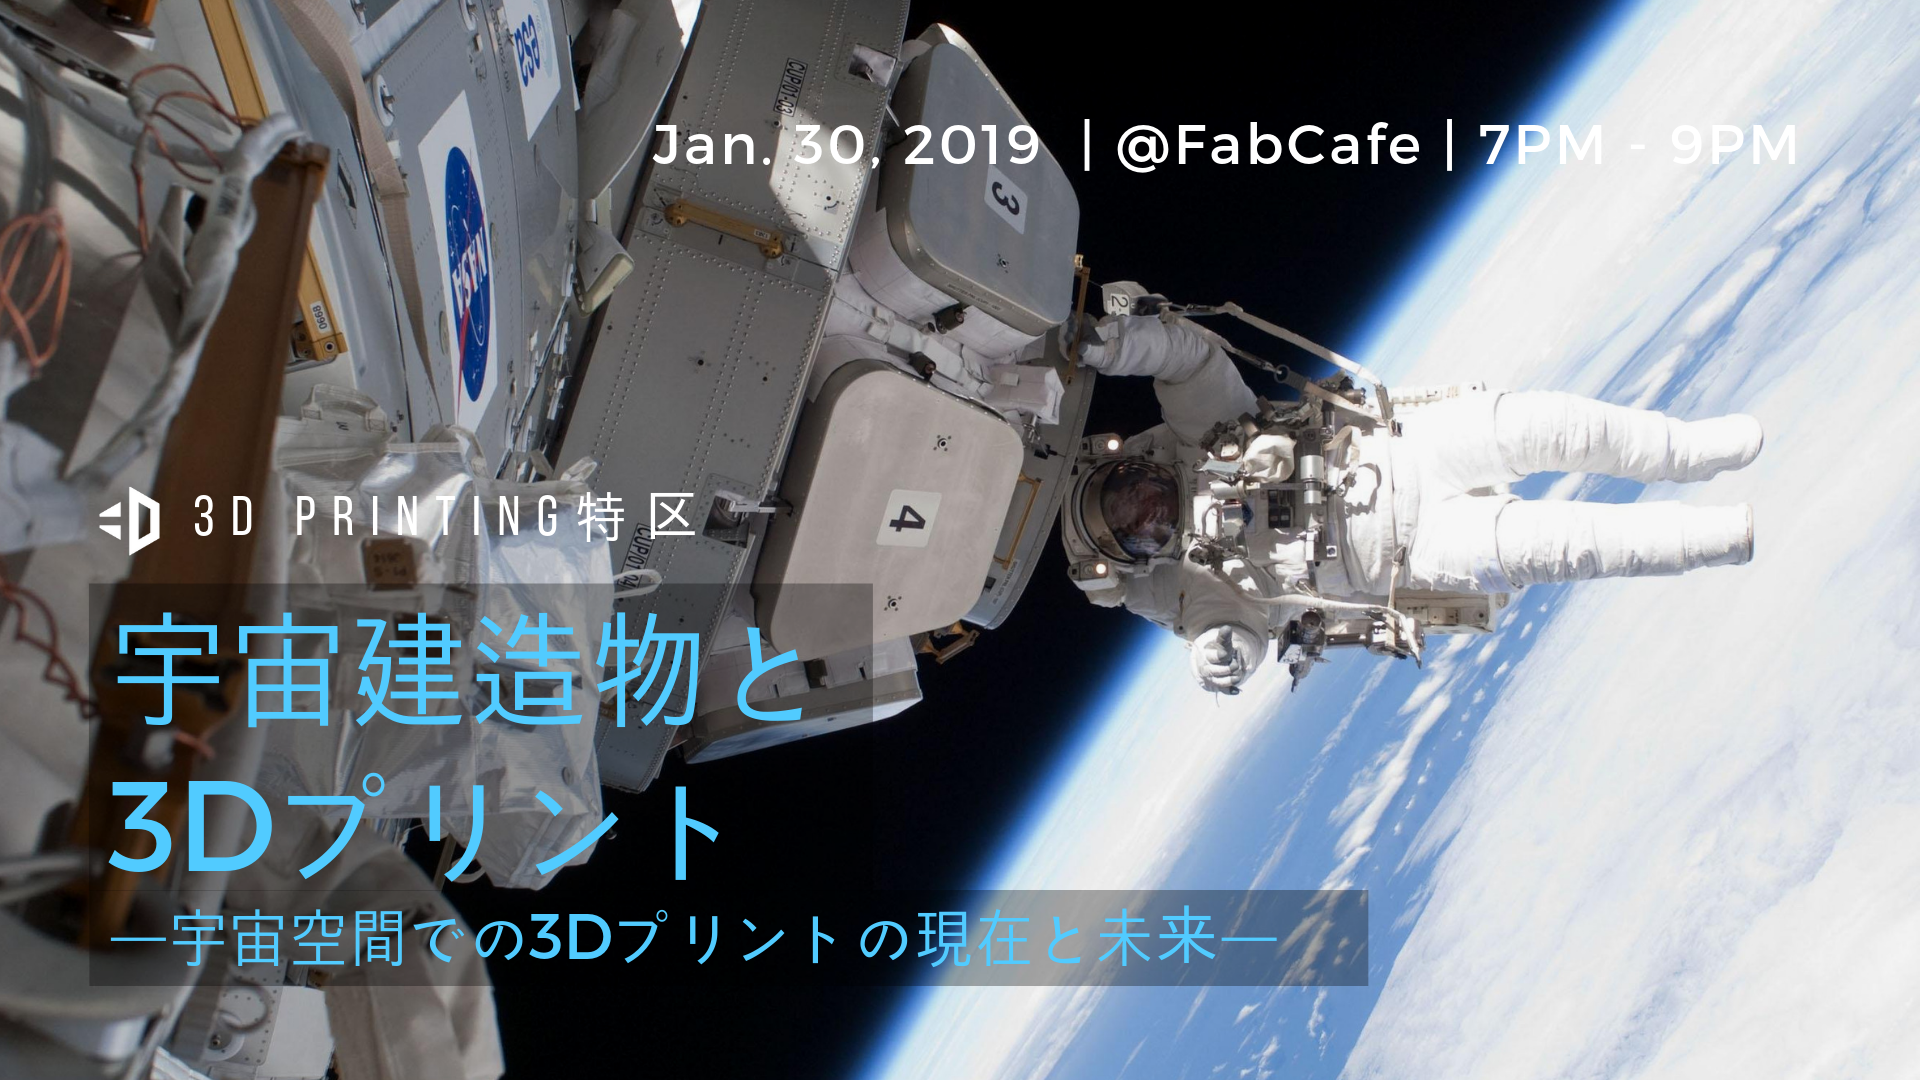 2019.1.30.Event.png